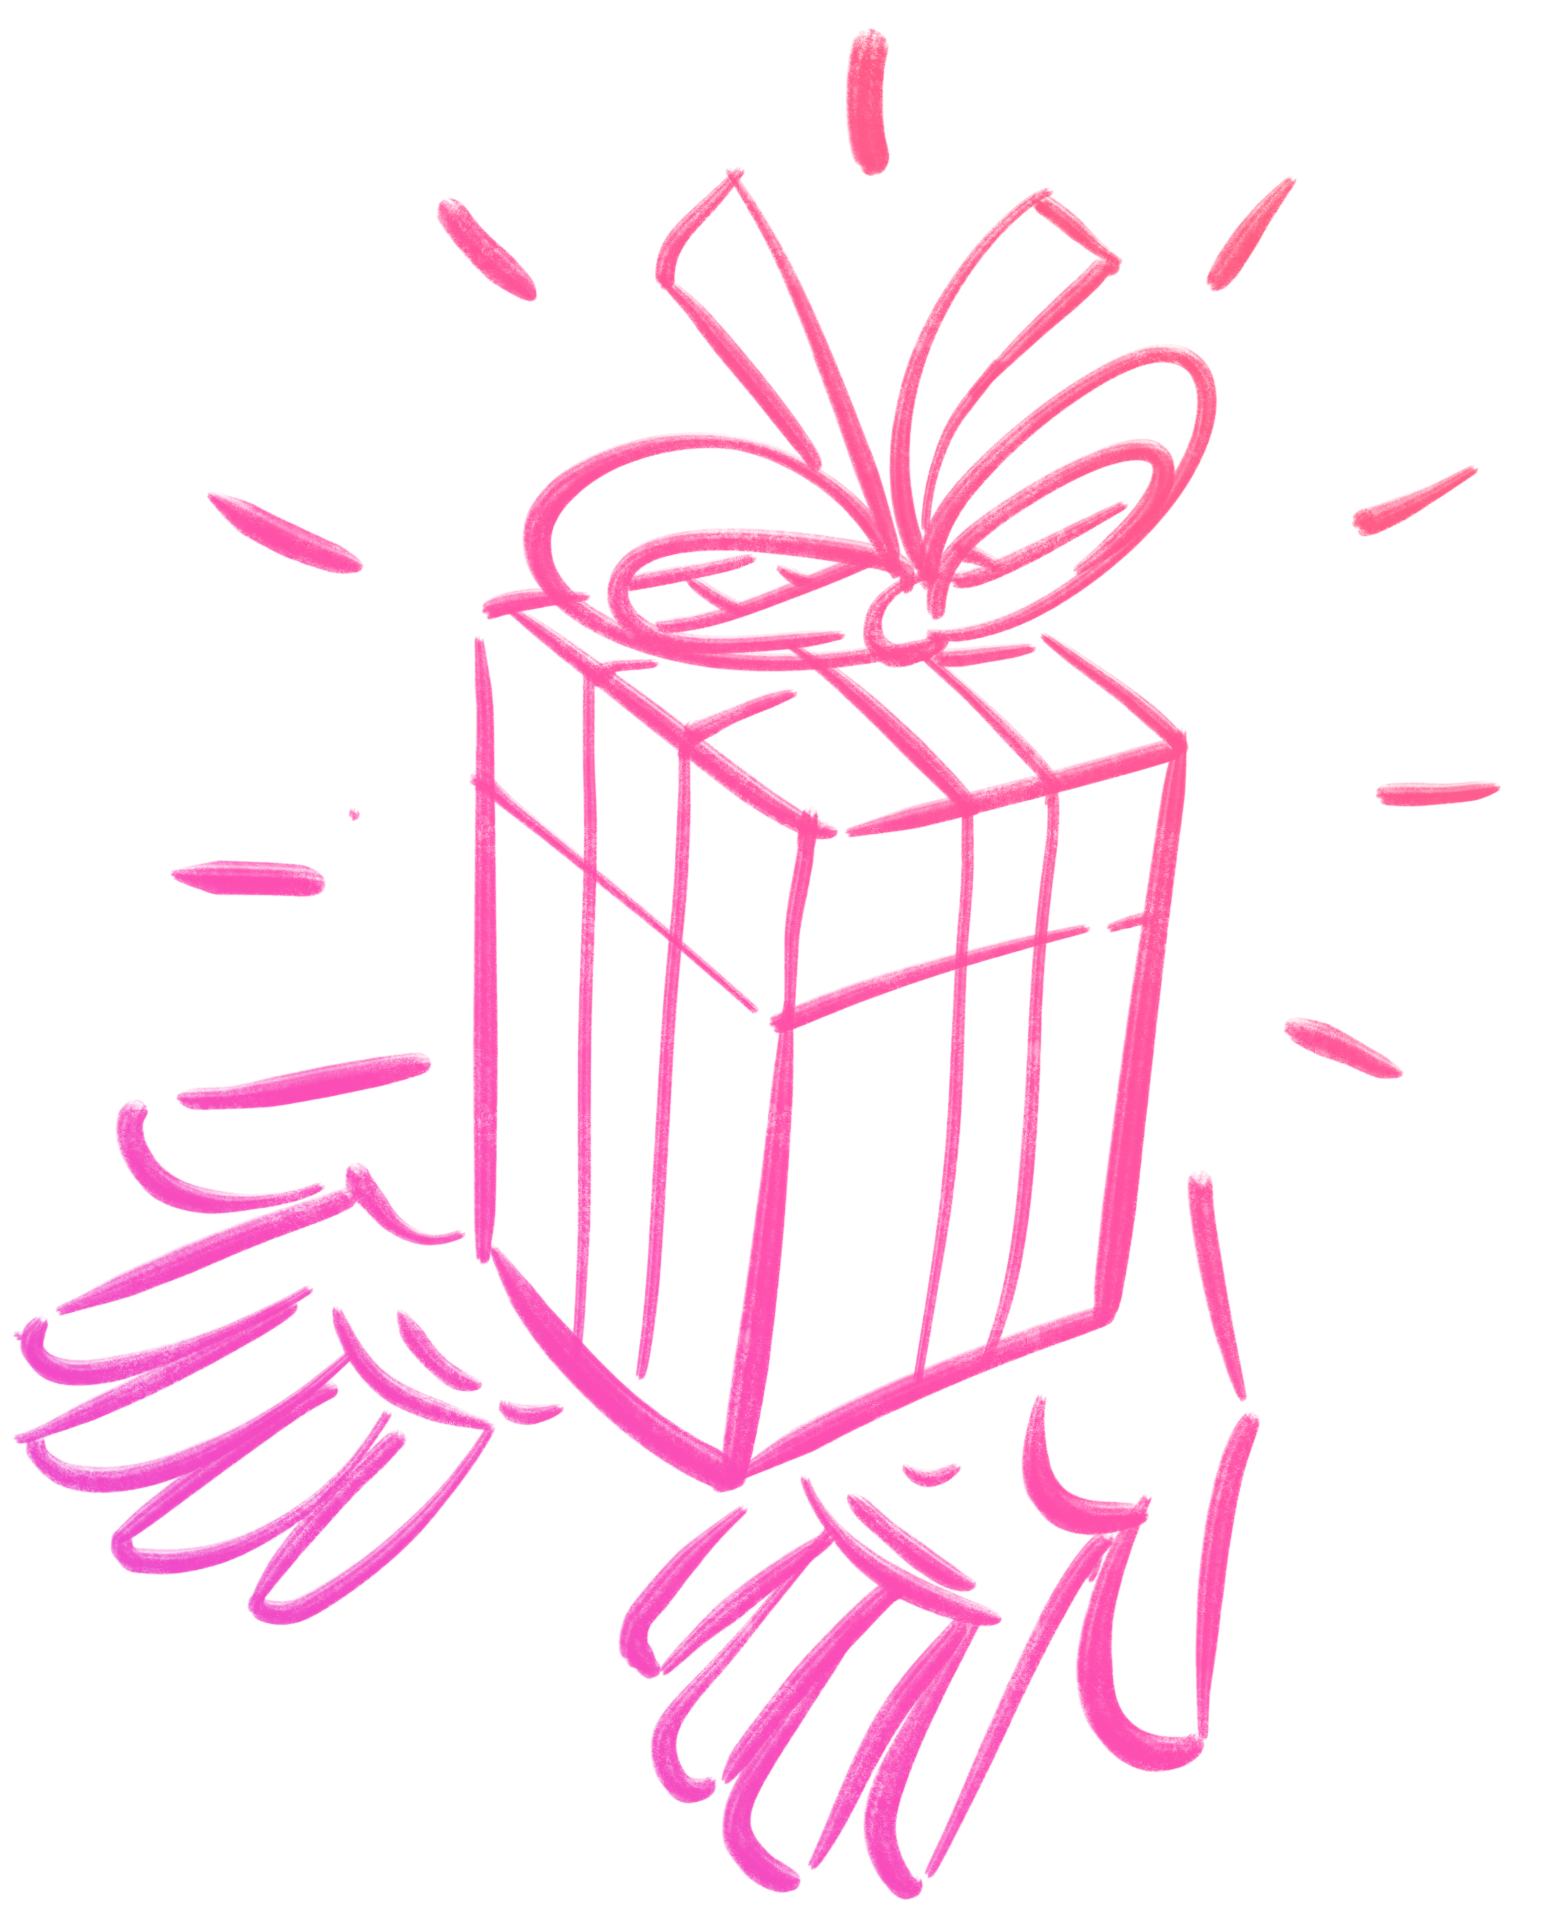 give-gift.png